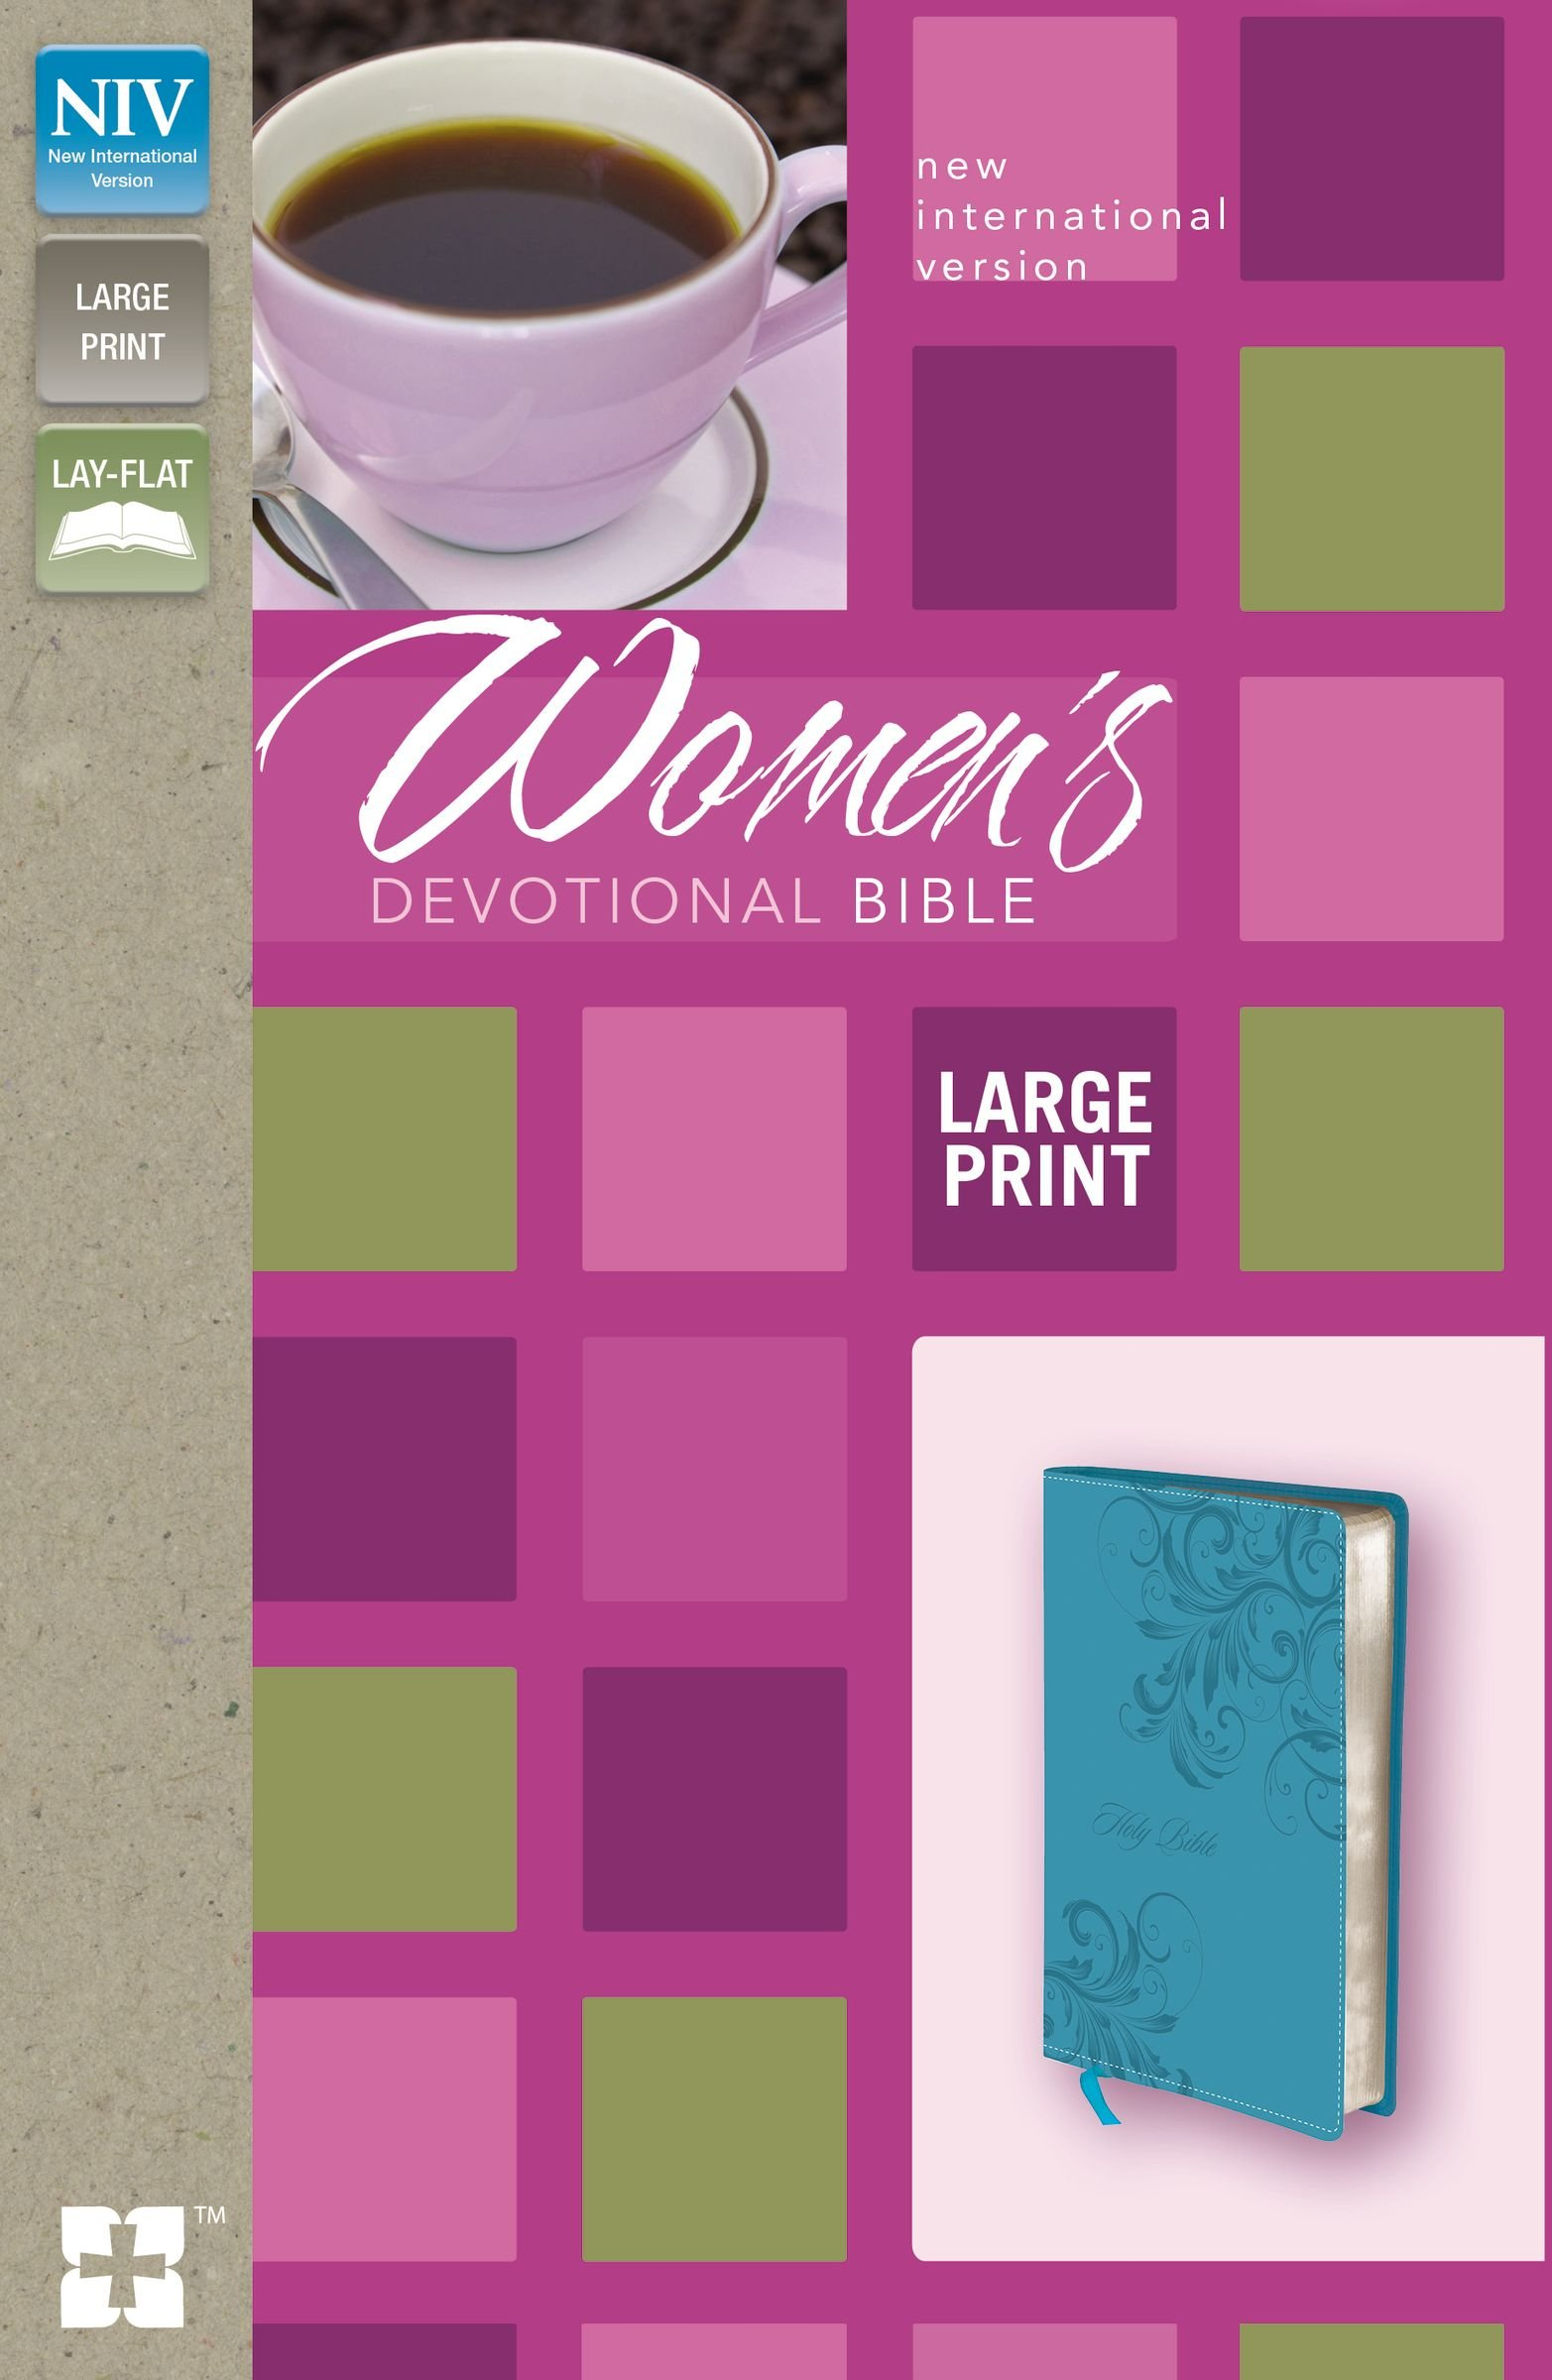 NIV, Women's Devotional Bible, Large Print, Leathersoft, Teal by HarperCollins Christian Pub.